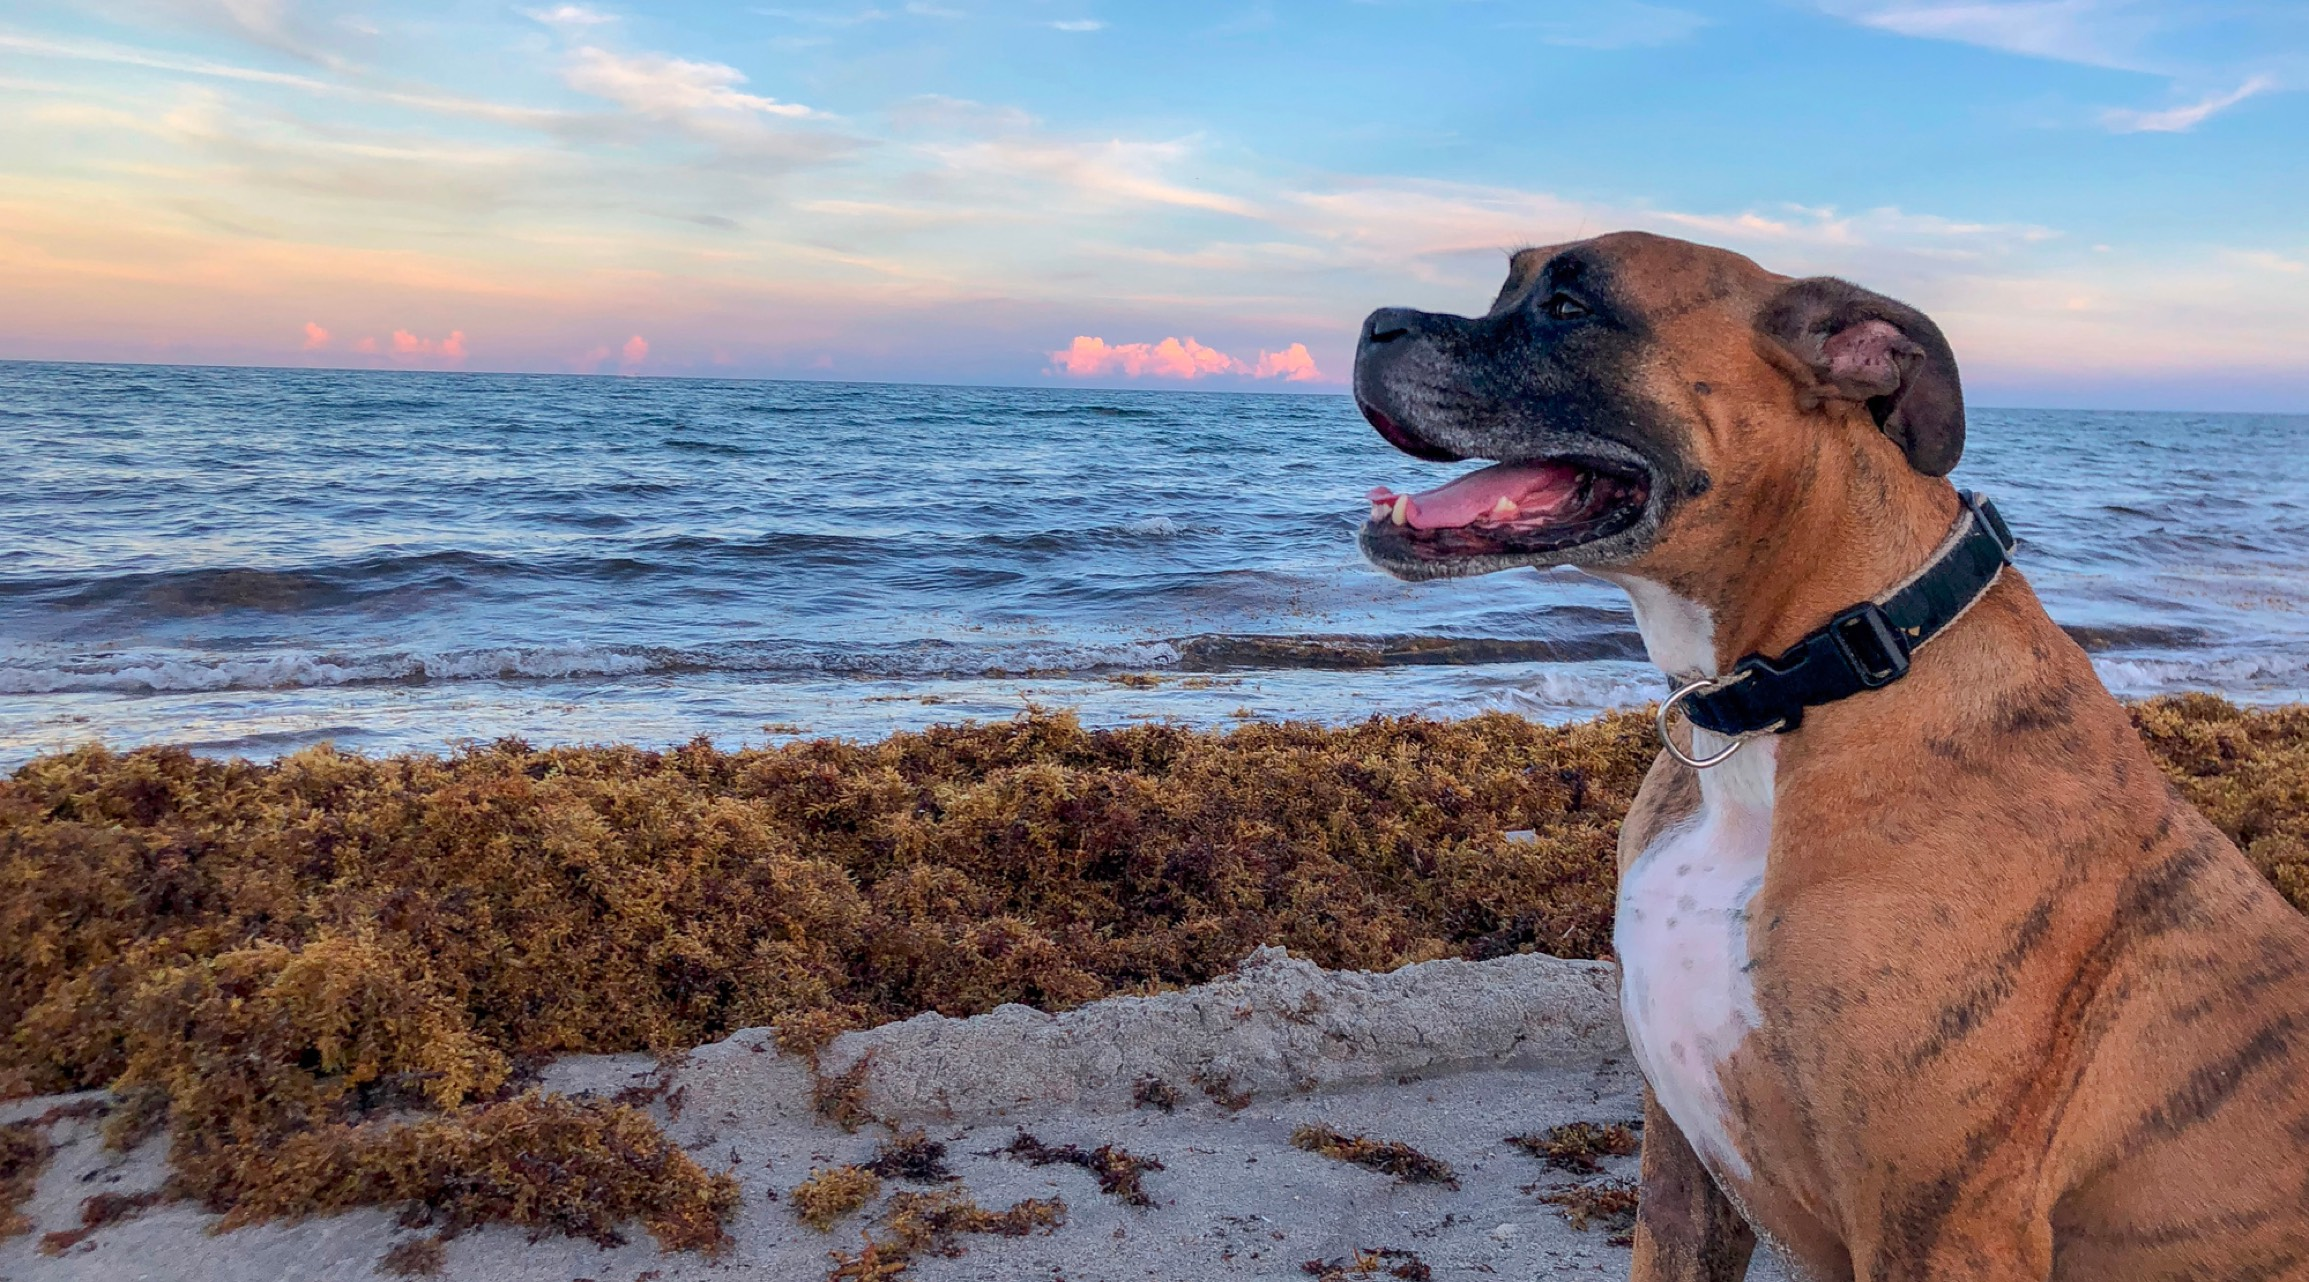 Happy brindle-coat dog sitting on a beach, with the ocean in the background